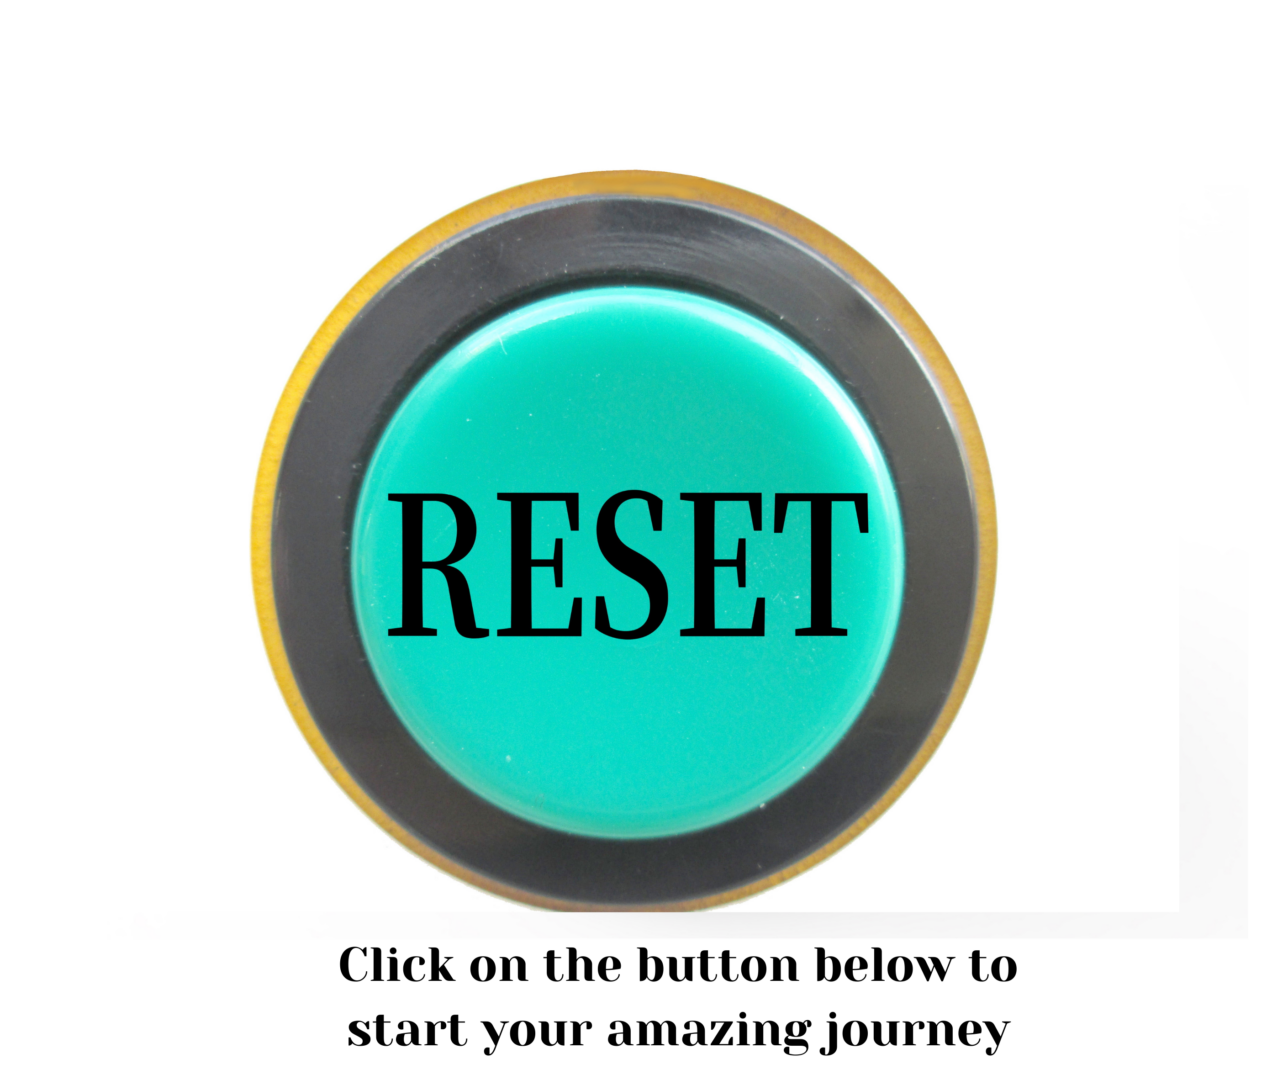 Hit the button transform to your life (2)